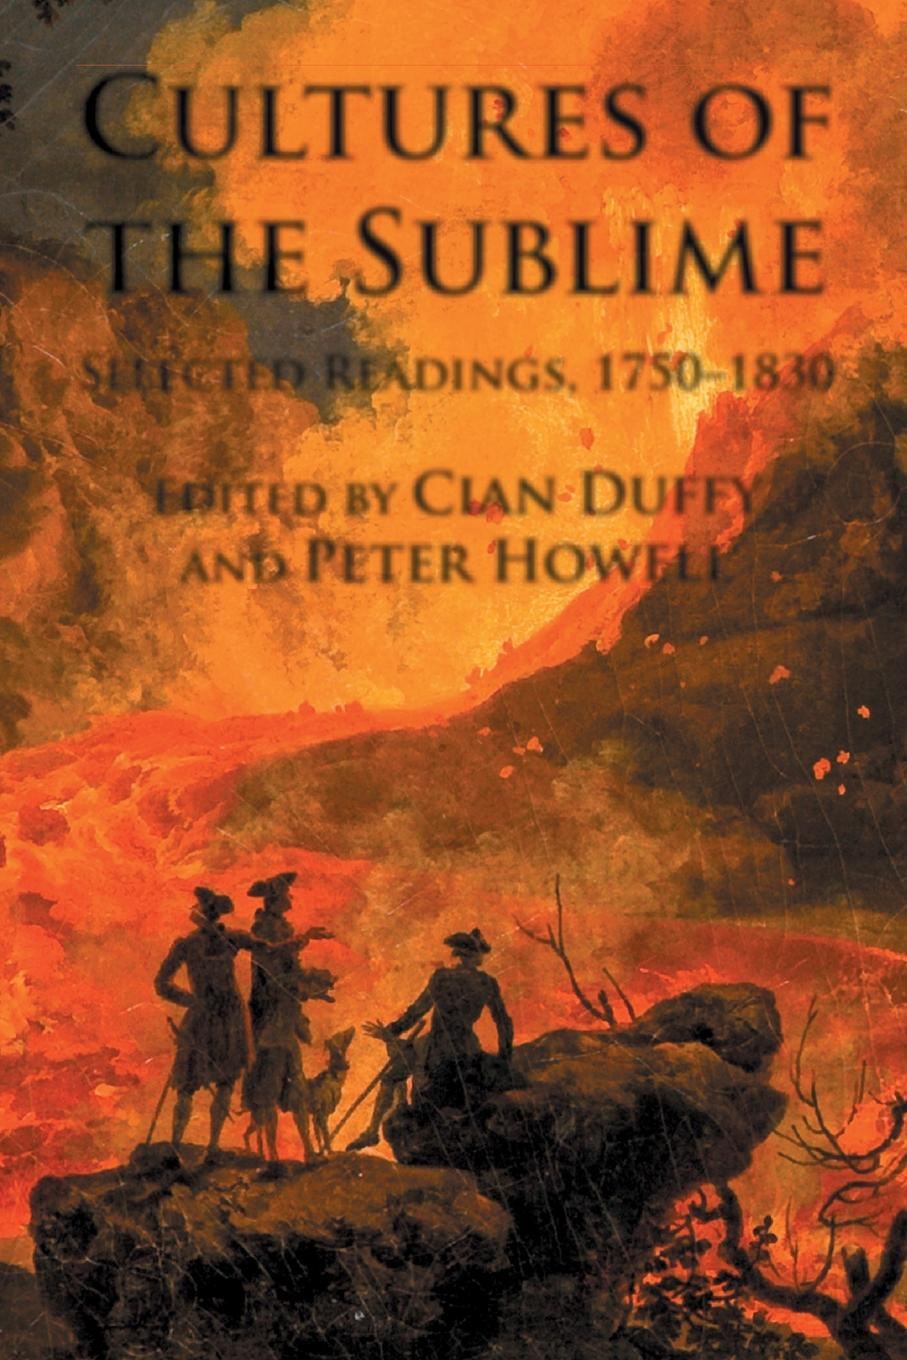 цена на Cian Duffy, Peter Howell Cultures of the Sublime. Selected Readings, 1750-1830